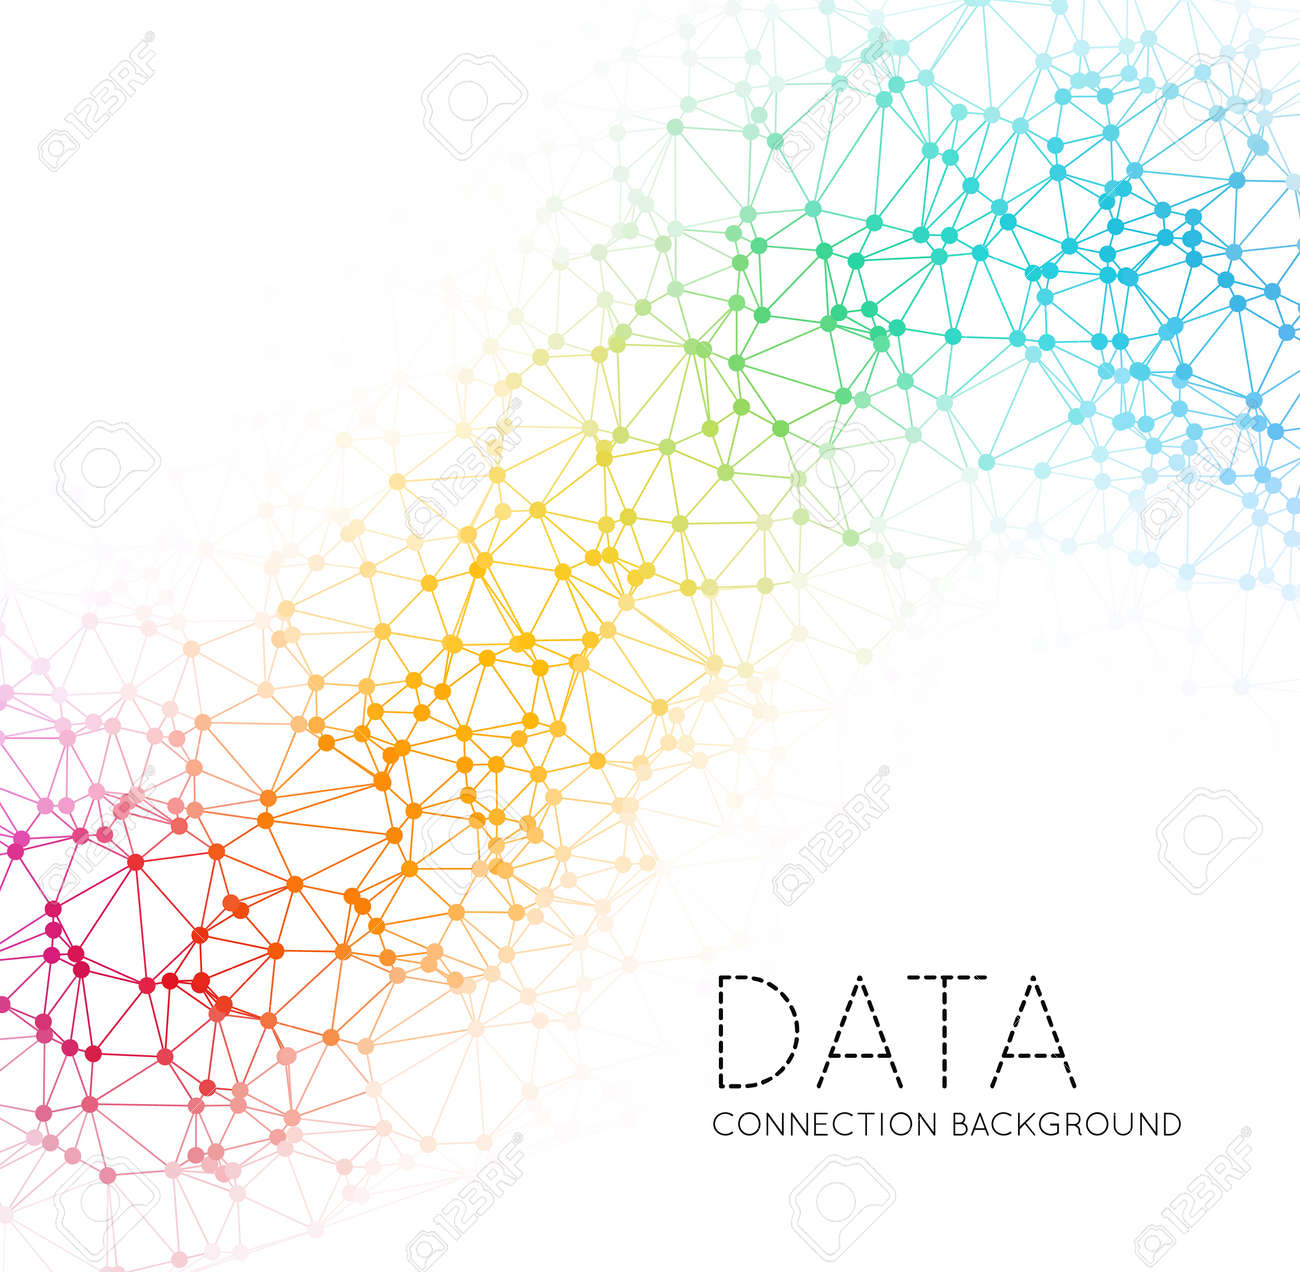 Dots with connections, triangles light background - 38614425